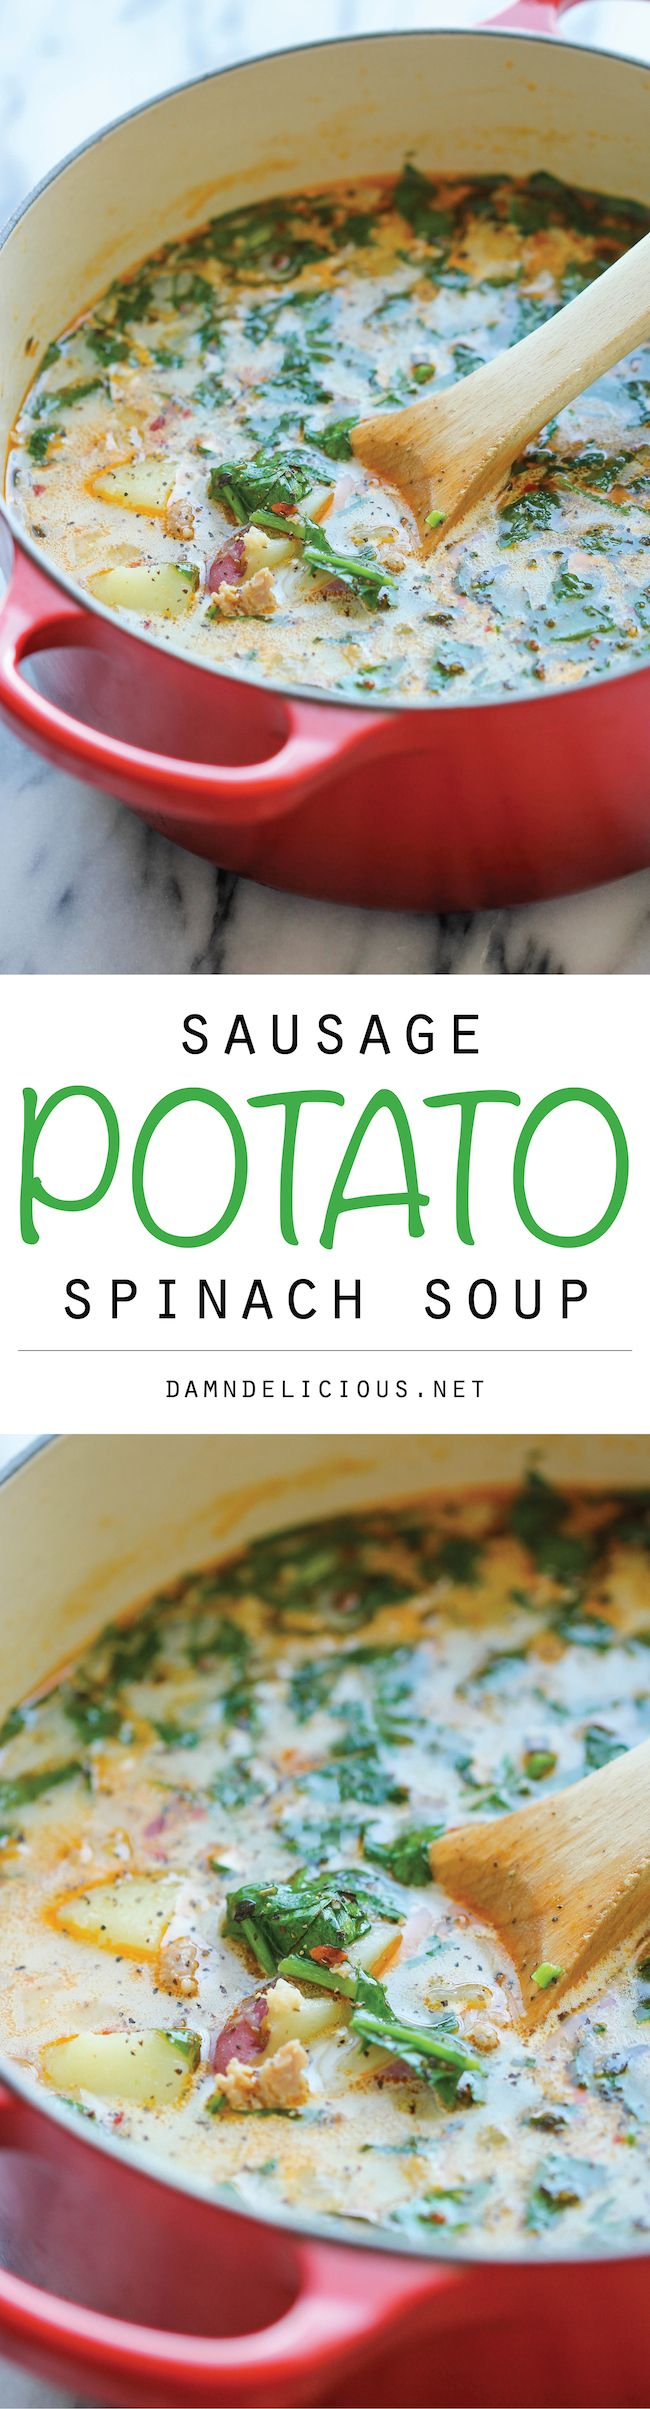 Sausage, Potato and Spinach Soup - A hearty, comforting soup . Was a little spicy, so next time I will use less of the red pepper flakes. Very good soup.